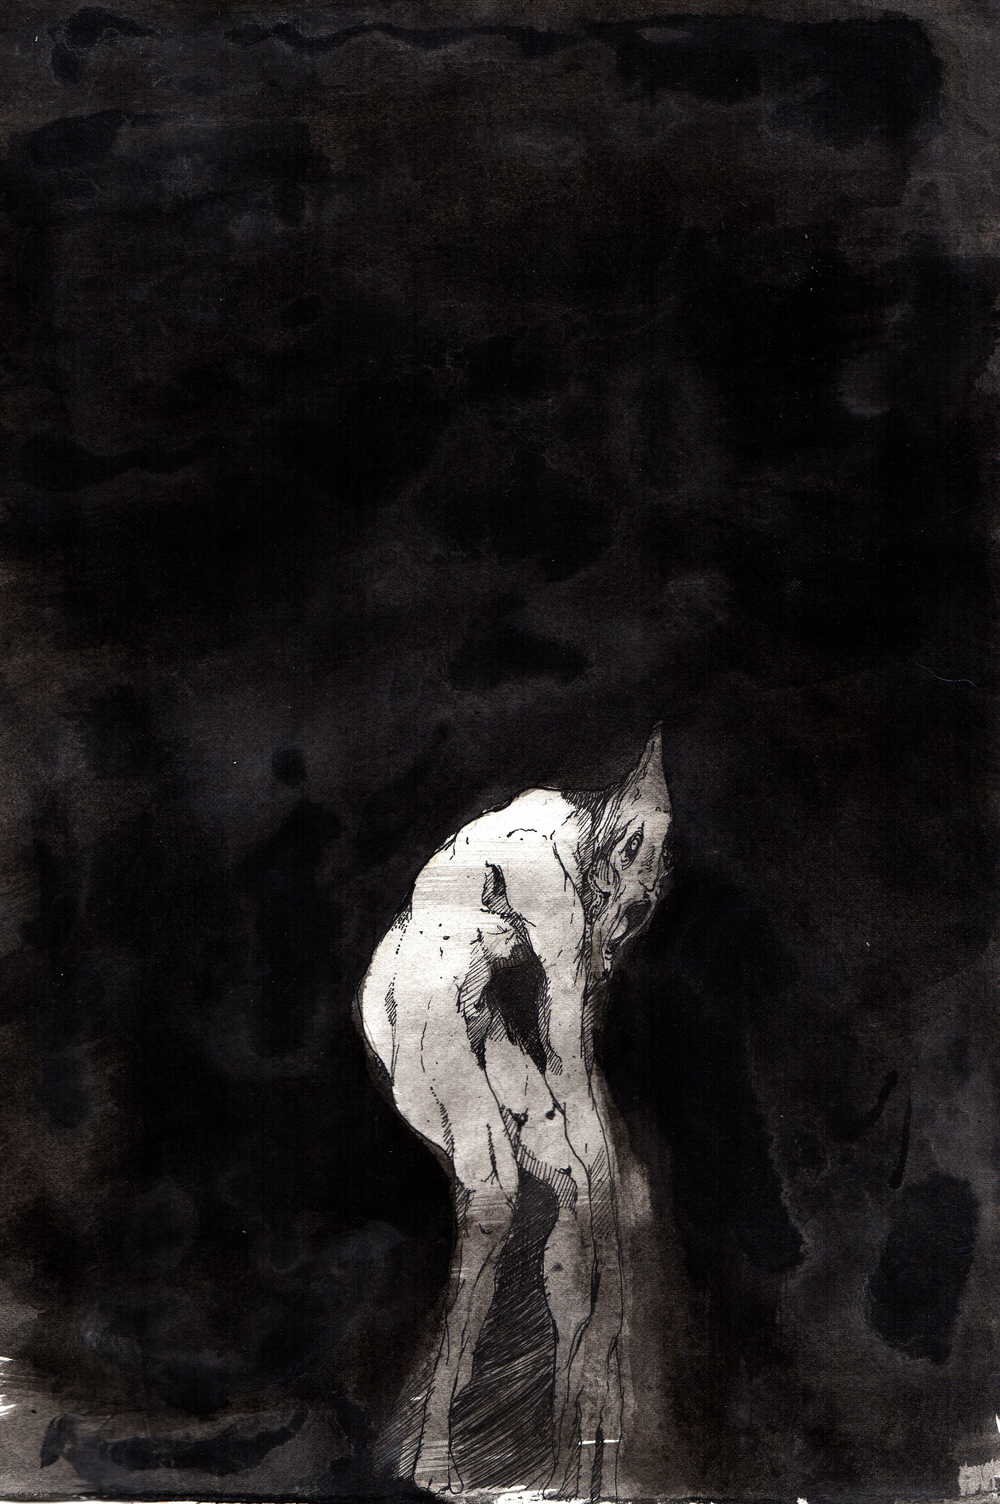 Life Without Air  . 2013. 10 x 15 inches. Ink wash on paper.